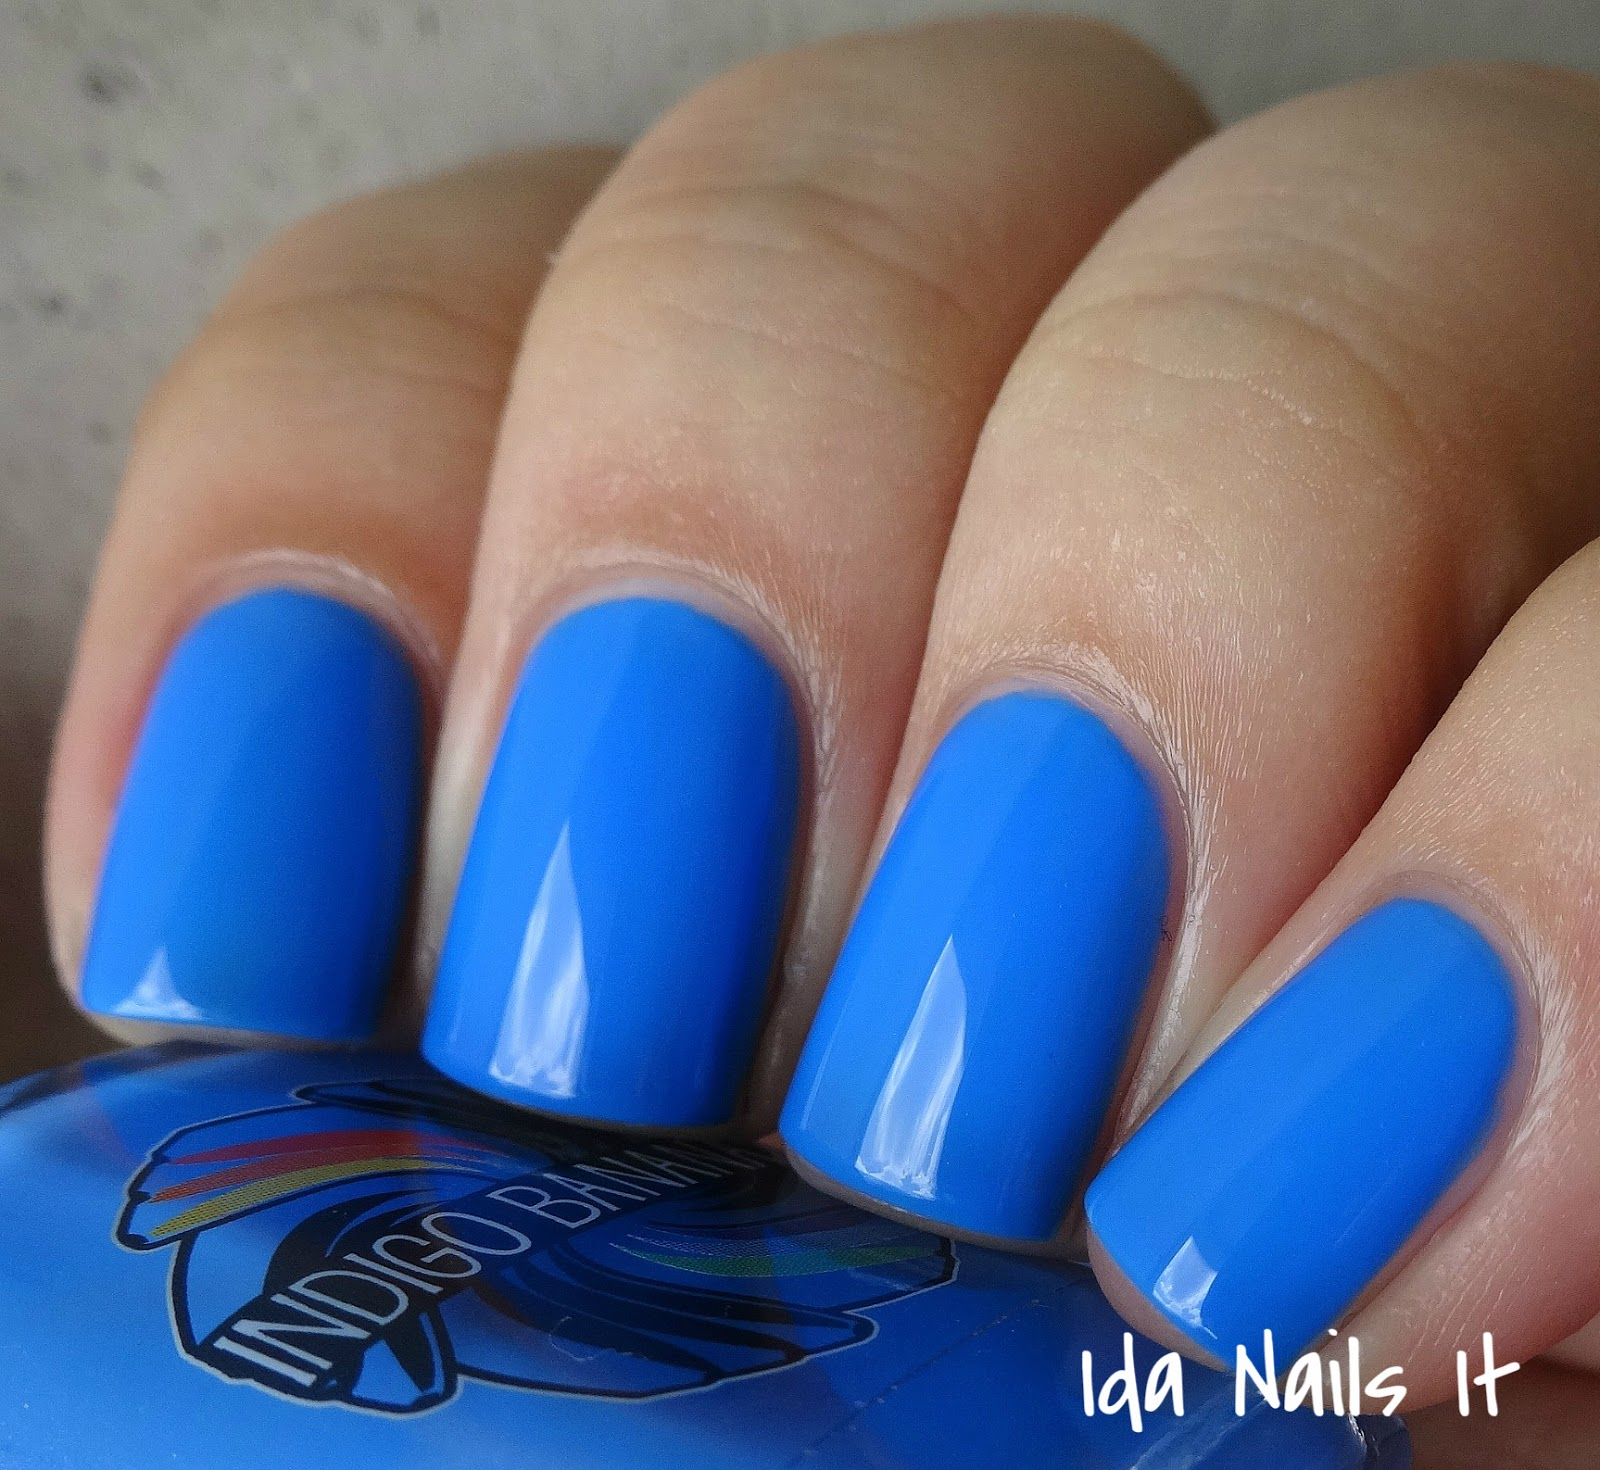 Ida Nails It: Indigo Bananas Neon, The 10th Element Collection ...